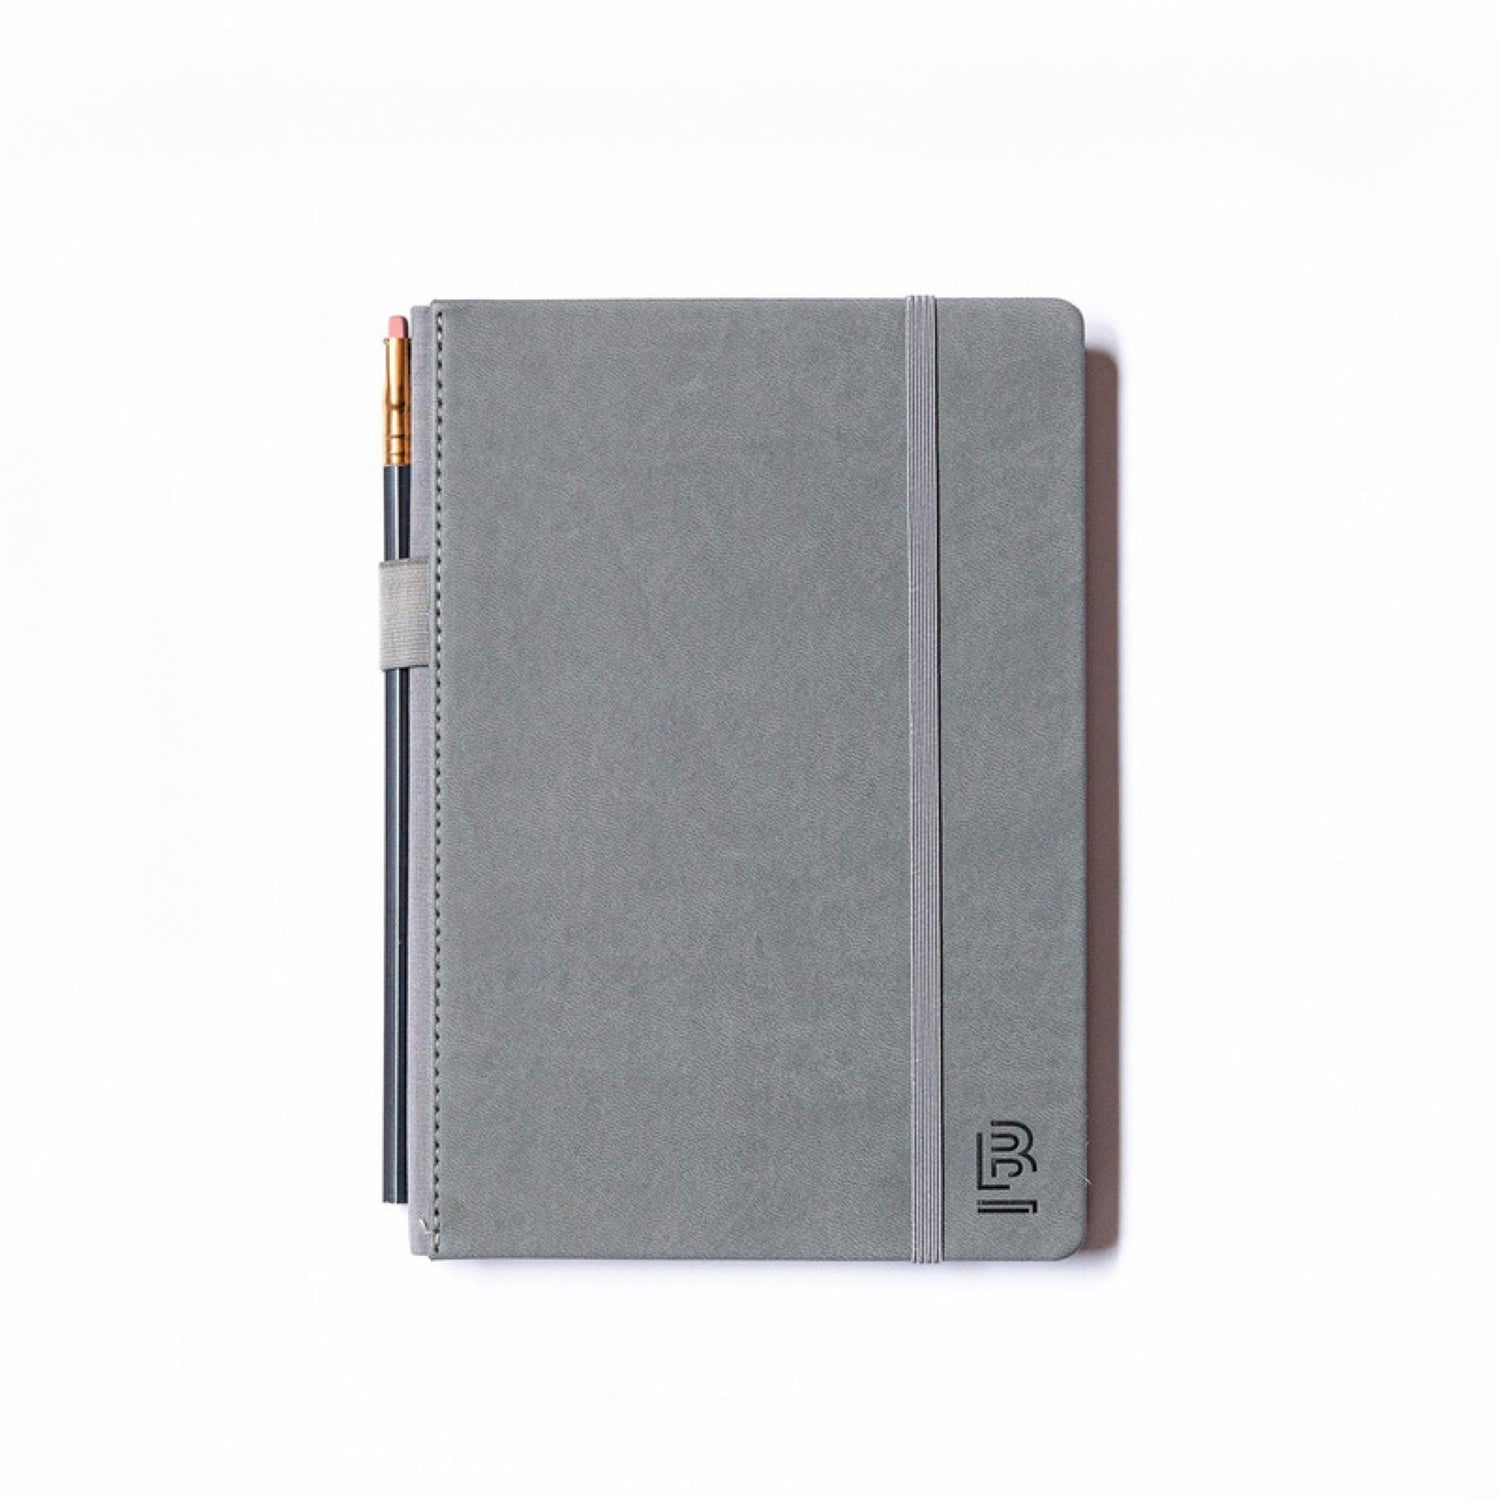 Blackwing Slate Notebook A5 Grey Ruled